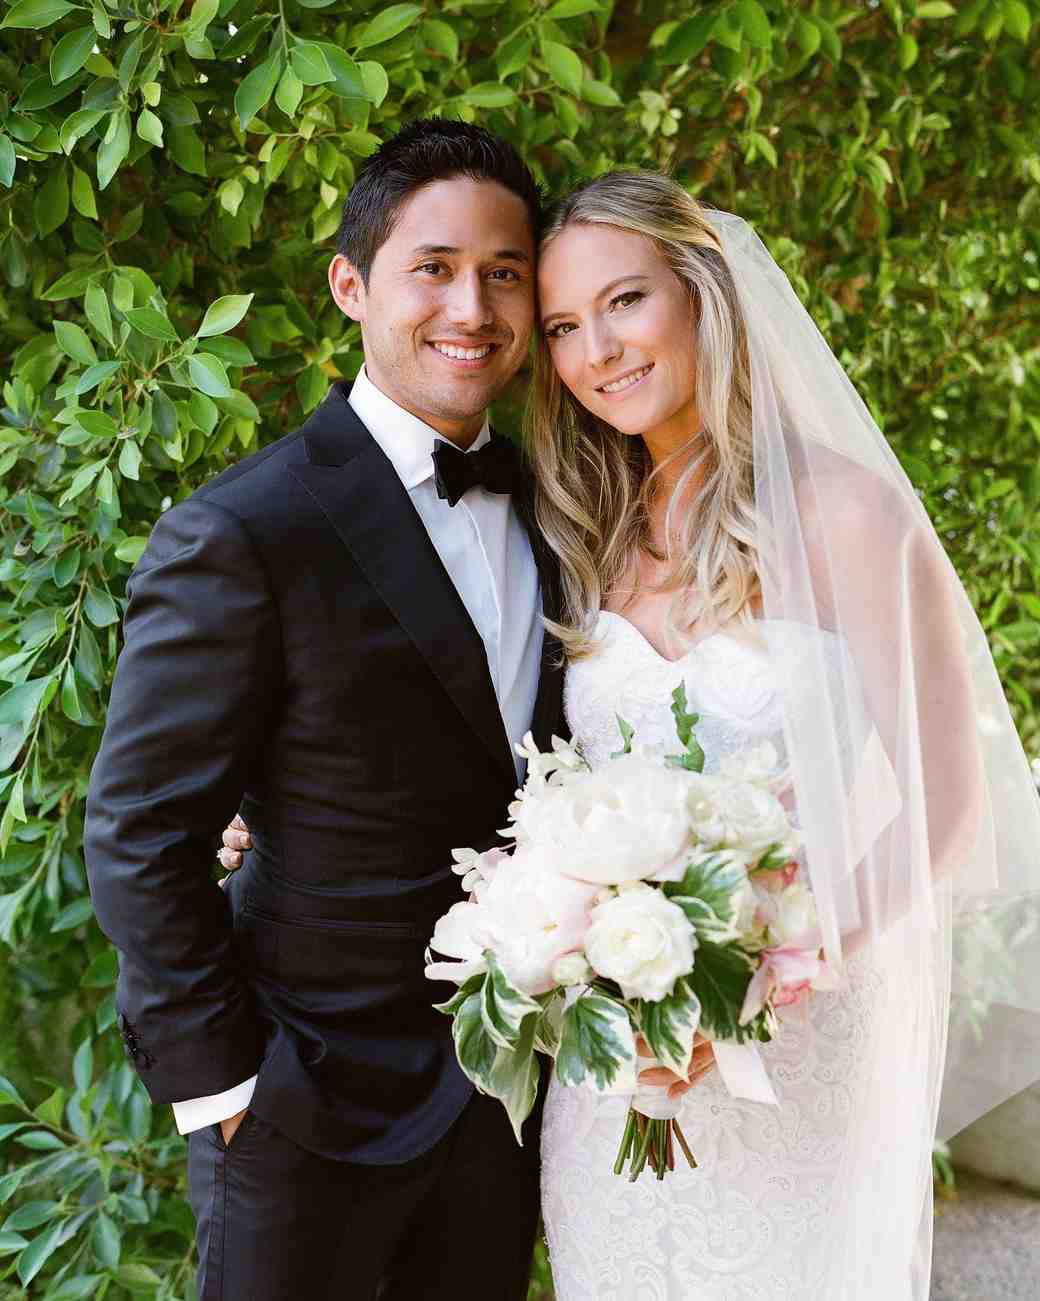 A Casual Outdoor Wedding In Palm Springs With A Black Tie Dress Code Martha Stewart Weddings